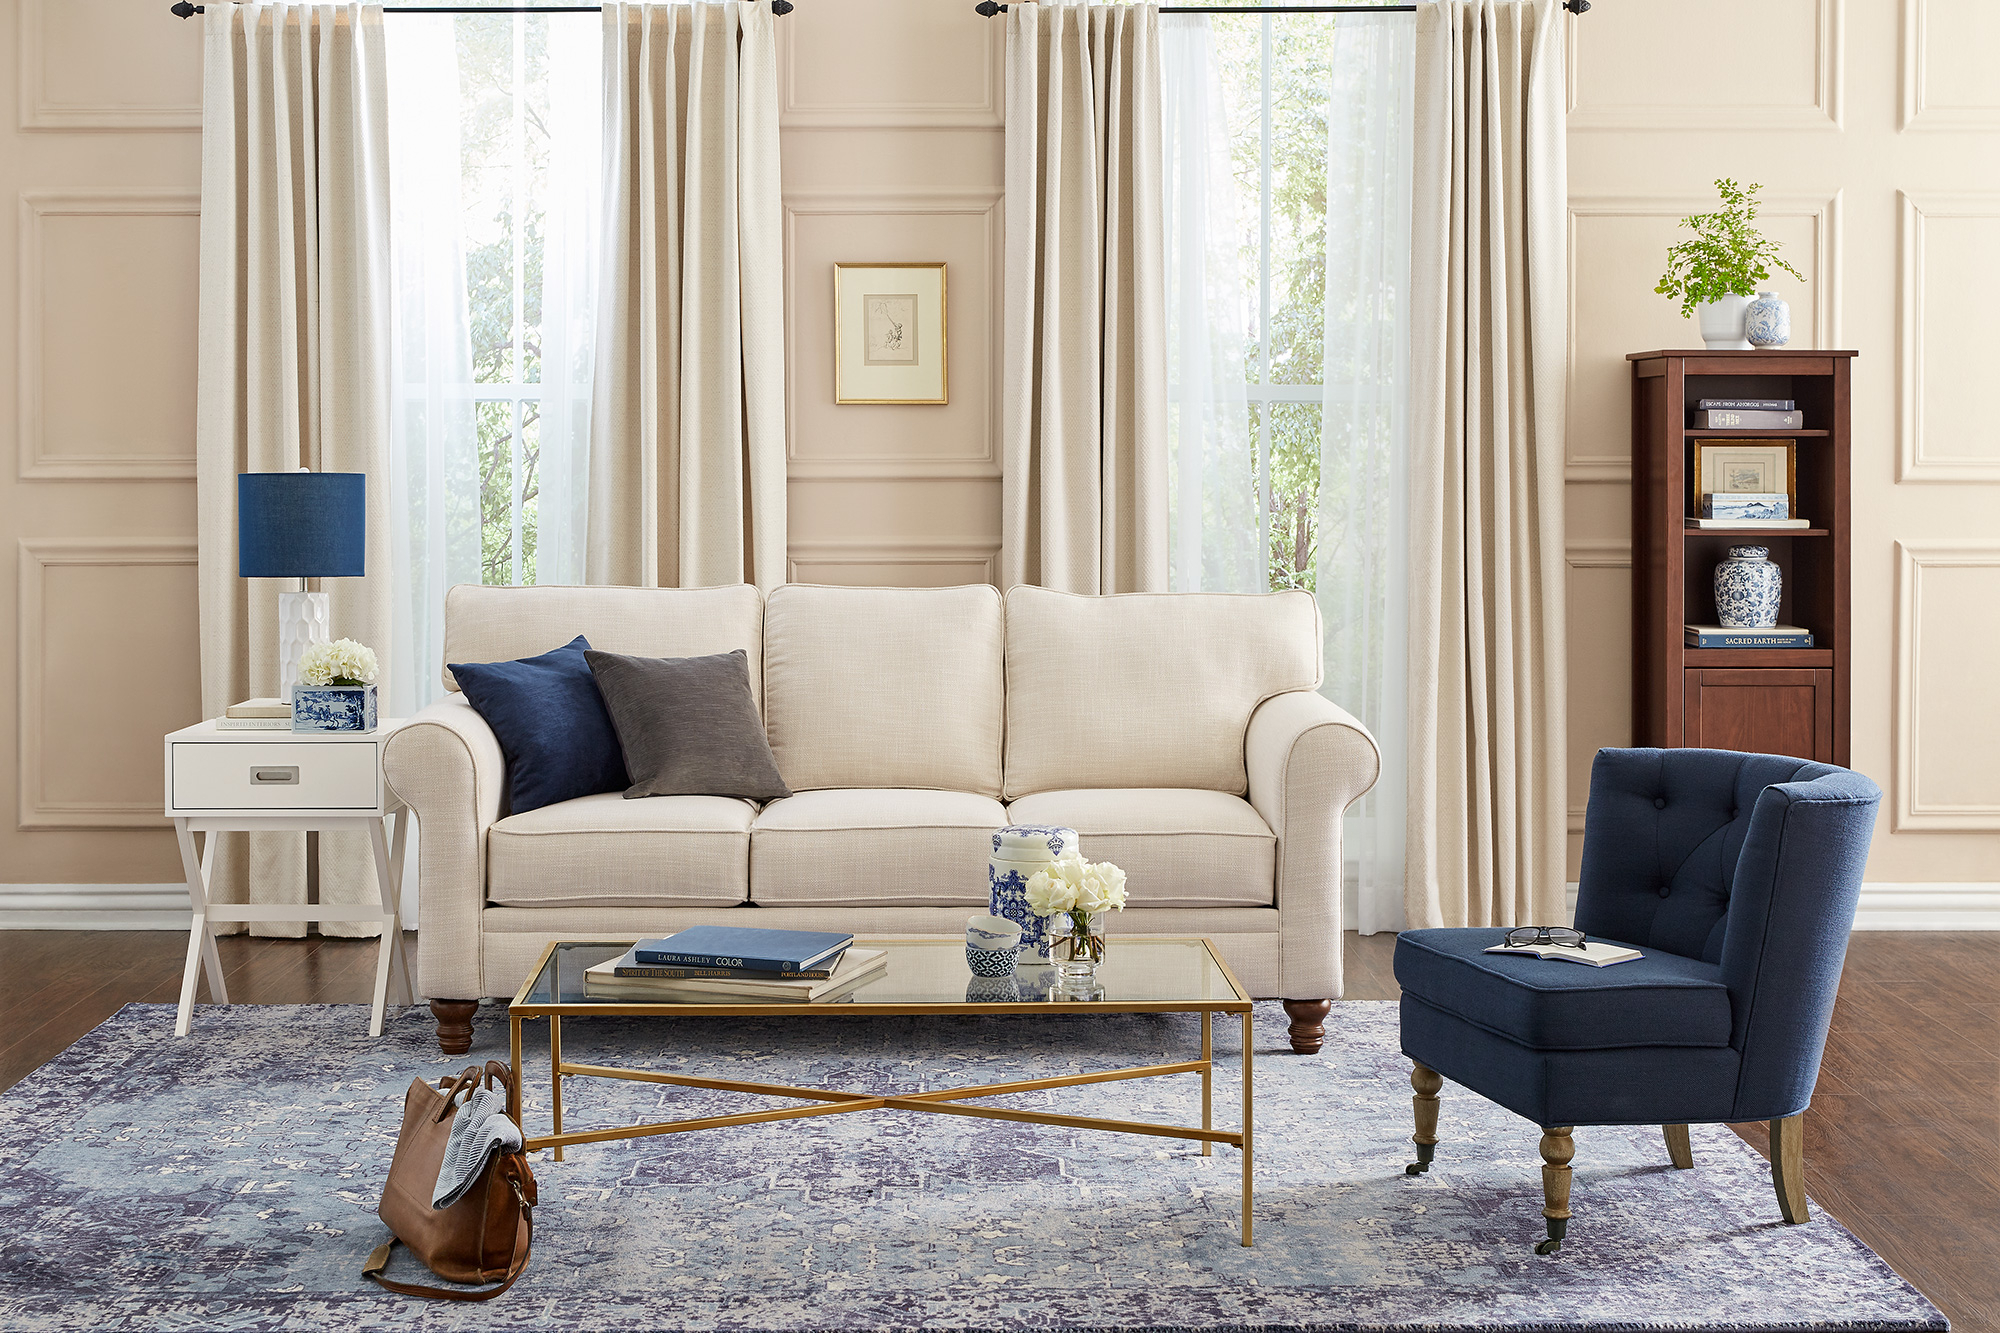 Deals On Crate&barrel – Talia Swivel Chair, Accent Chairs Pertaining To Revolve Swivel Accent Chairs (Image 5 of 23)